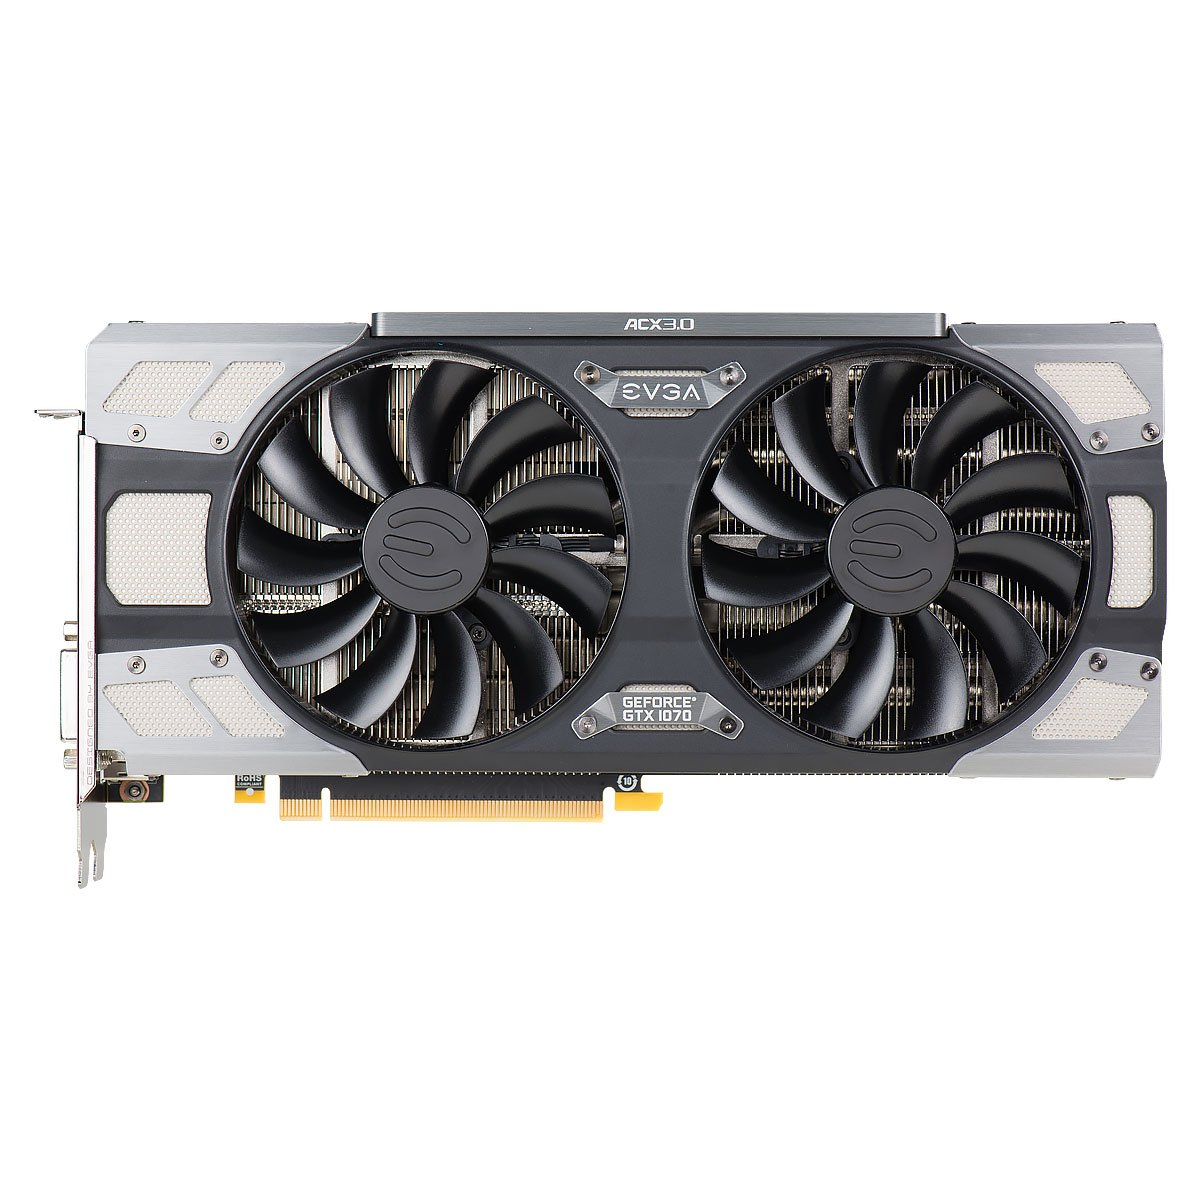 EVGA GeForce GTX 1070 FTW GAMING ACX 3.0, 8GB GDDR5, RGB LED, 10CM FAN, 10 Power Phases, Double BIOS, DX12 OSD Support (PXOC) Graphics Card 08G-P4-6276-KR by EVGA (Image #7)